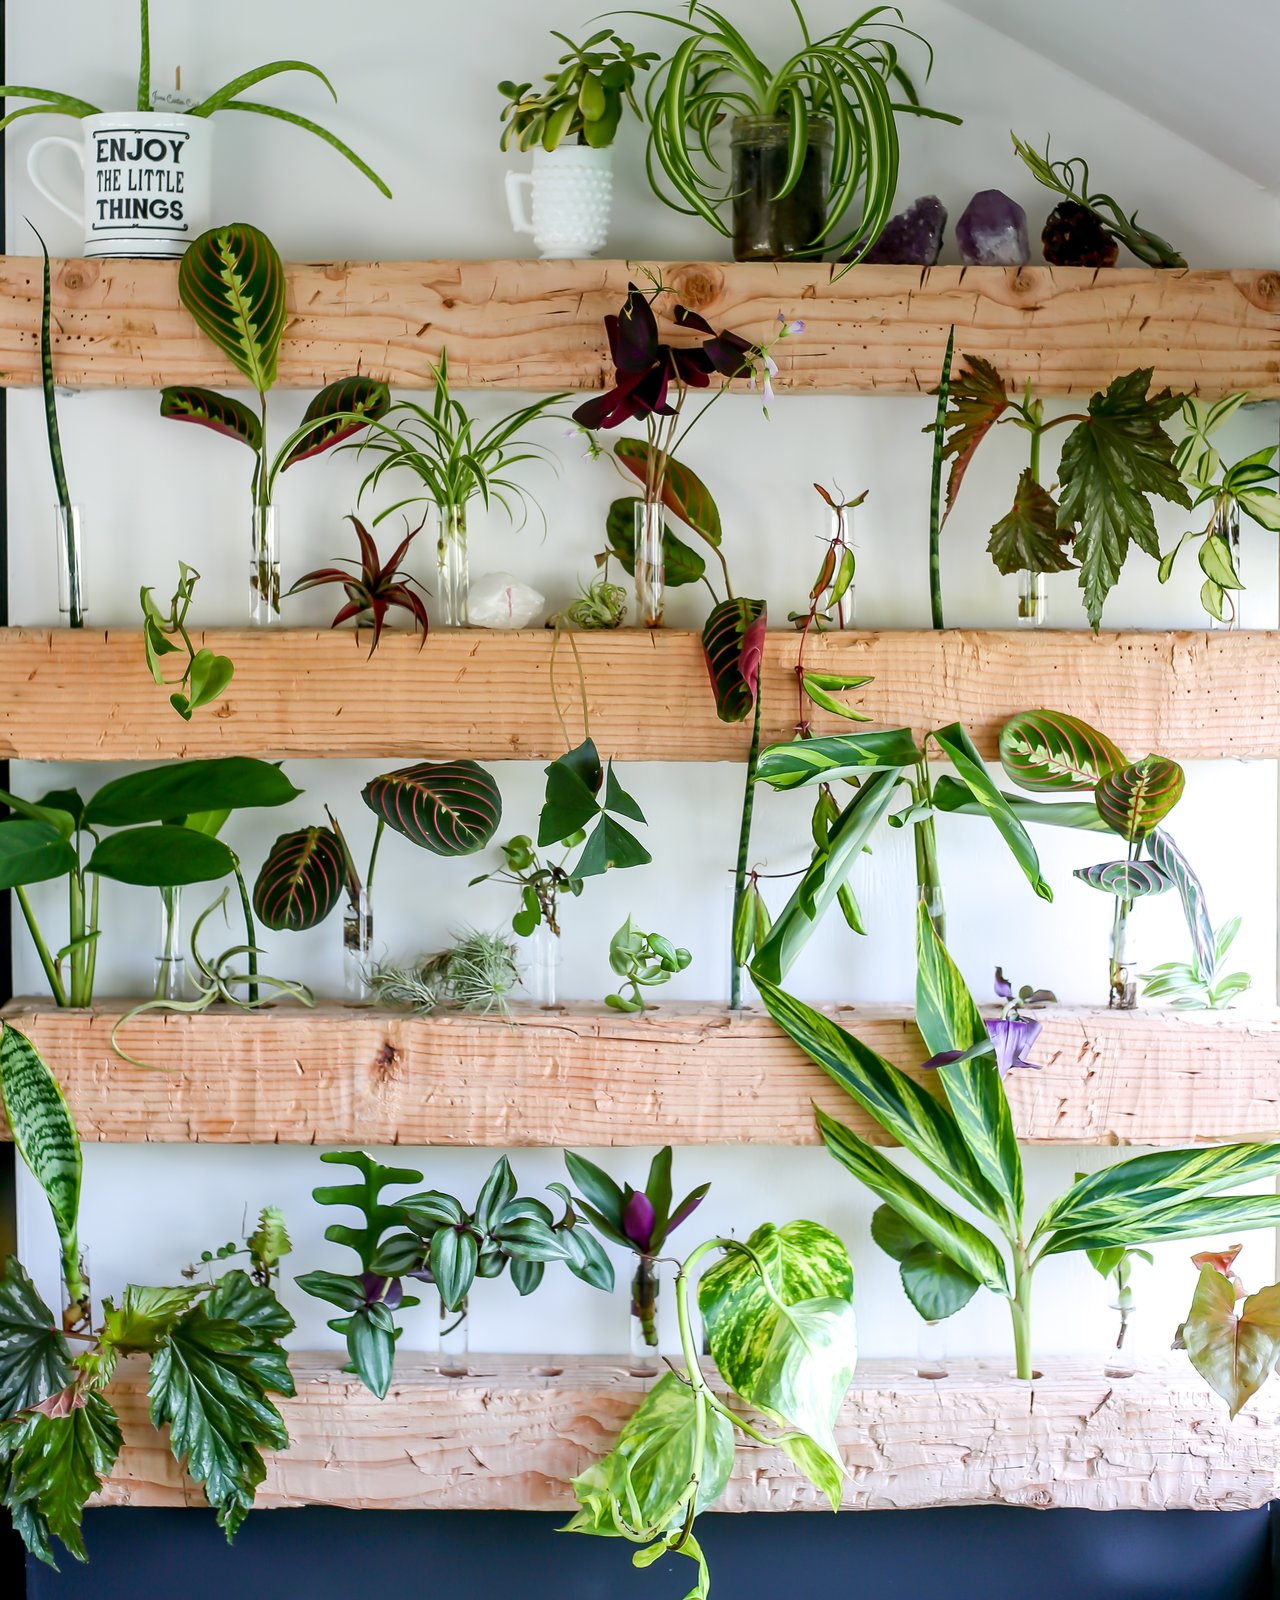 Living Room and Shelves The propagation wall is always changing and brings so much life to the space  Big Booty Judy- Our Home on Wheels